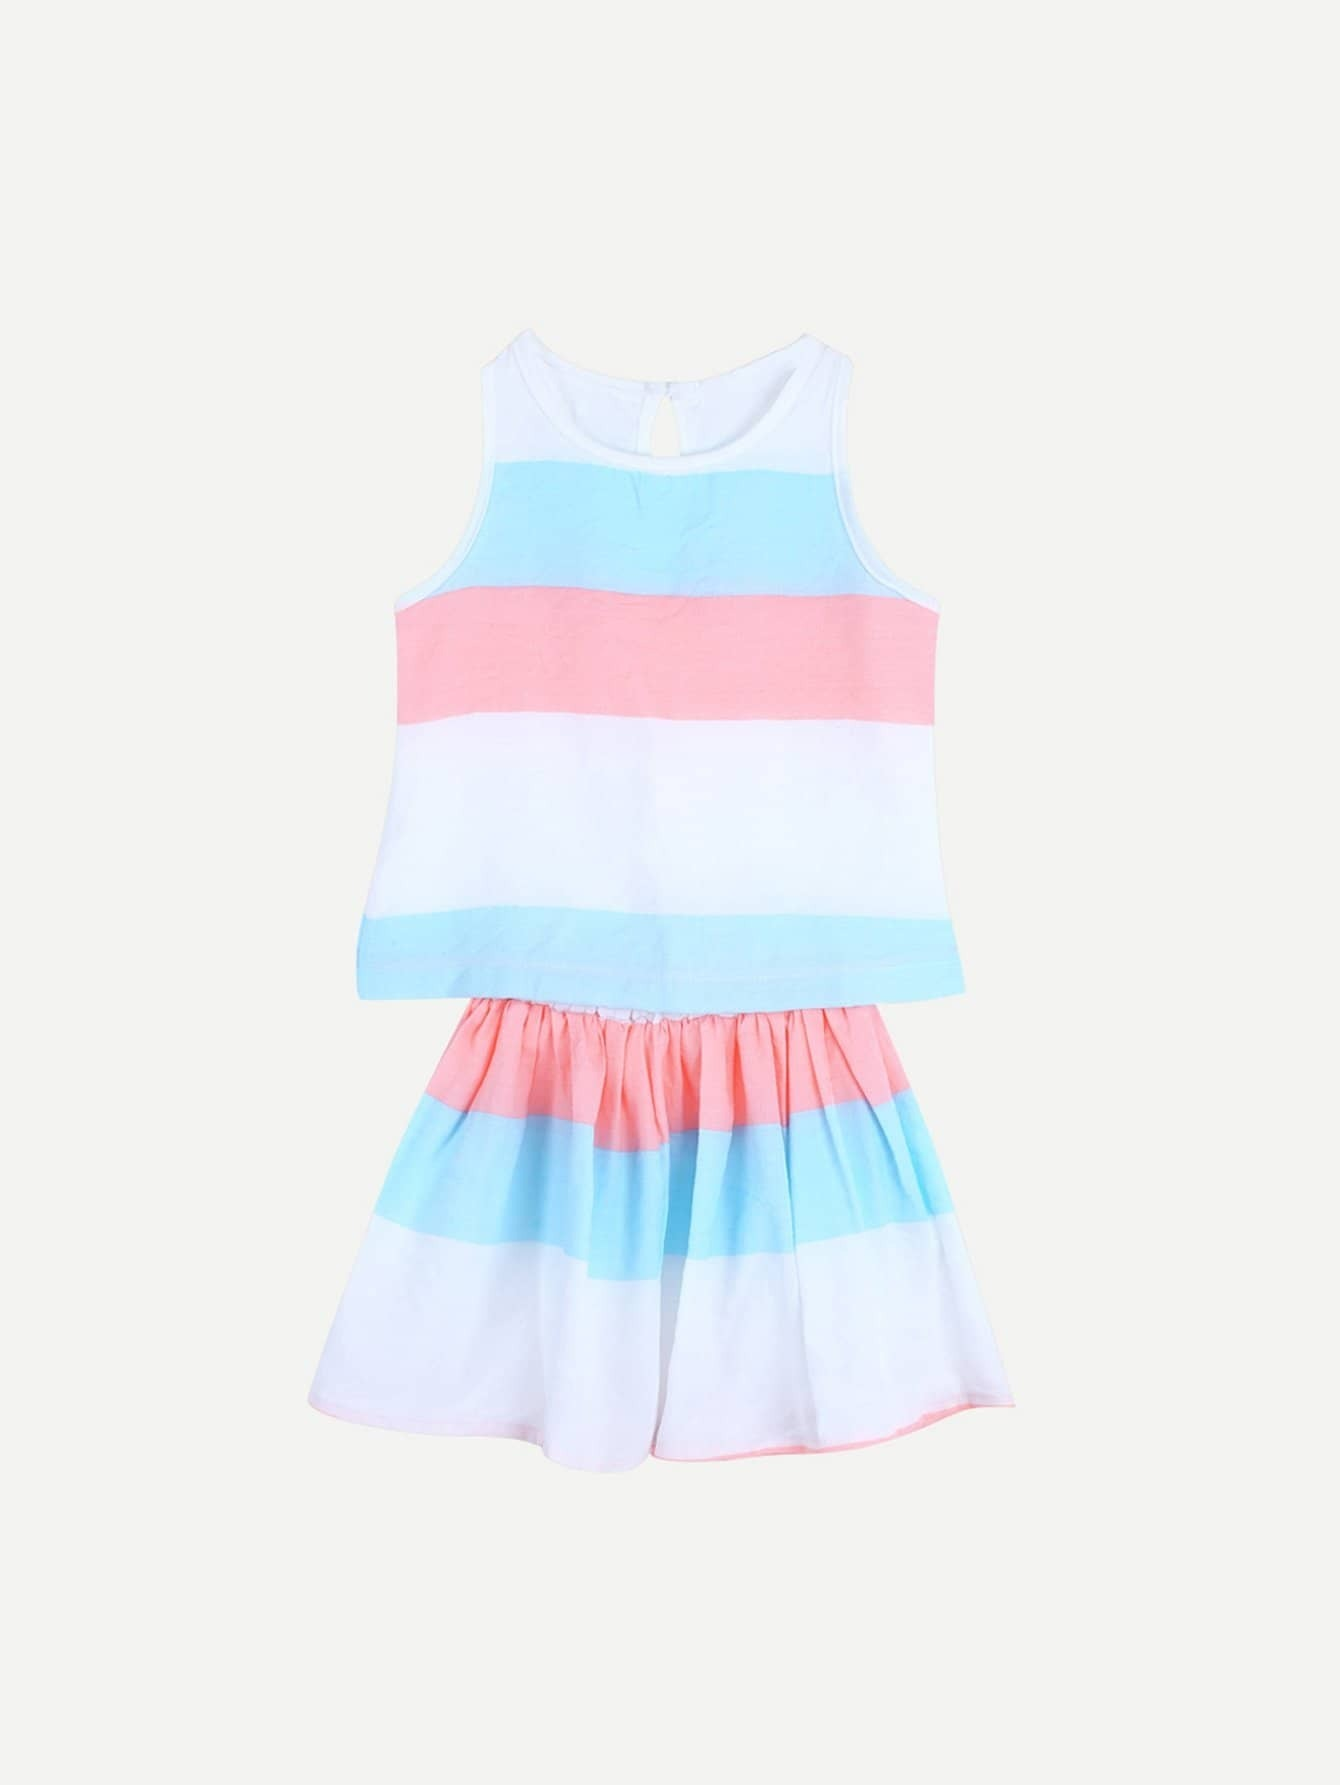 Girls Hollow Out Striped Top With Skirt executivity aero track 5l 505 детали